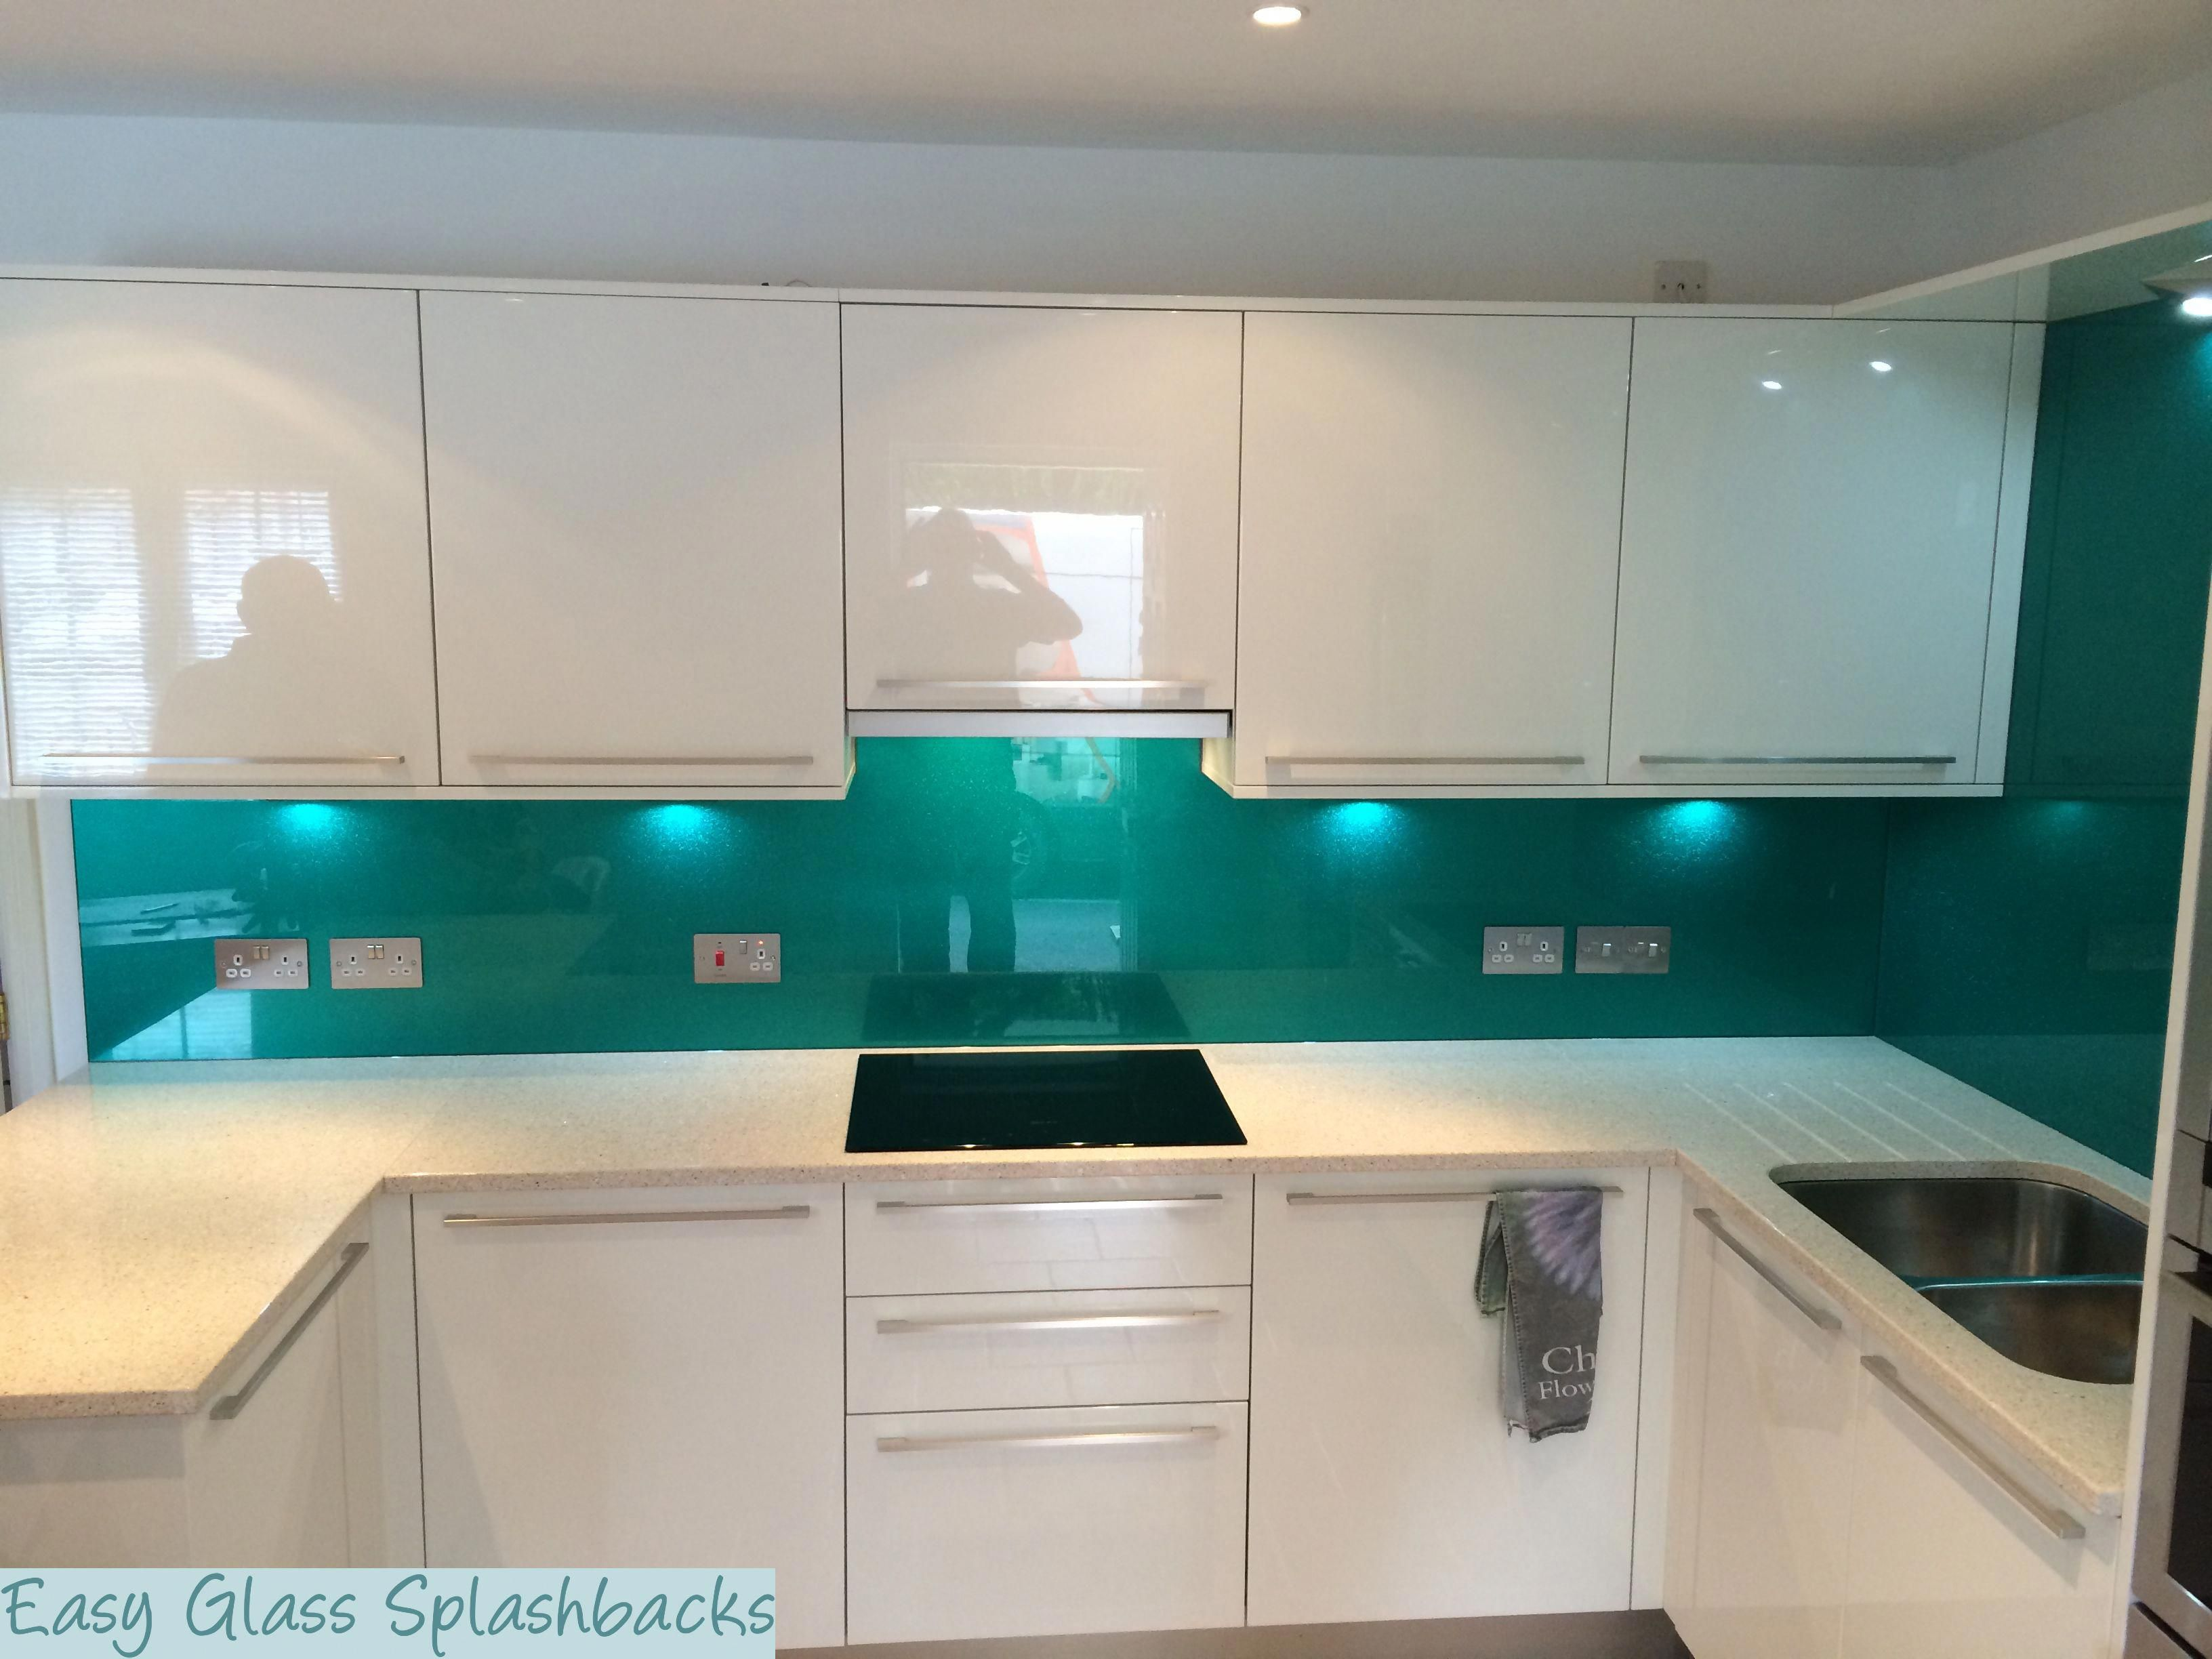 Kitchen Decoration Color Trends And Ideas 2019 Green Kitchen